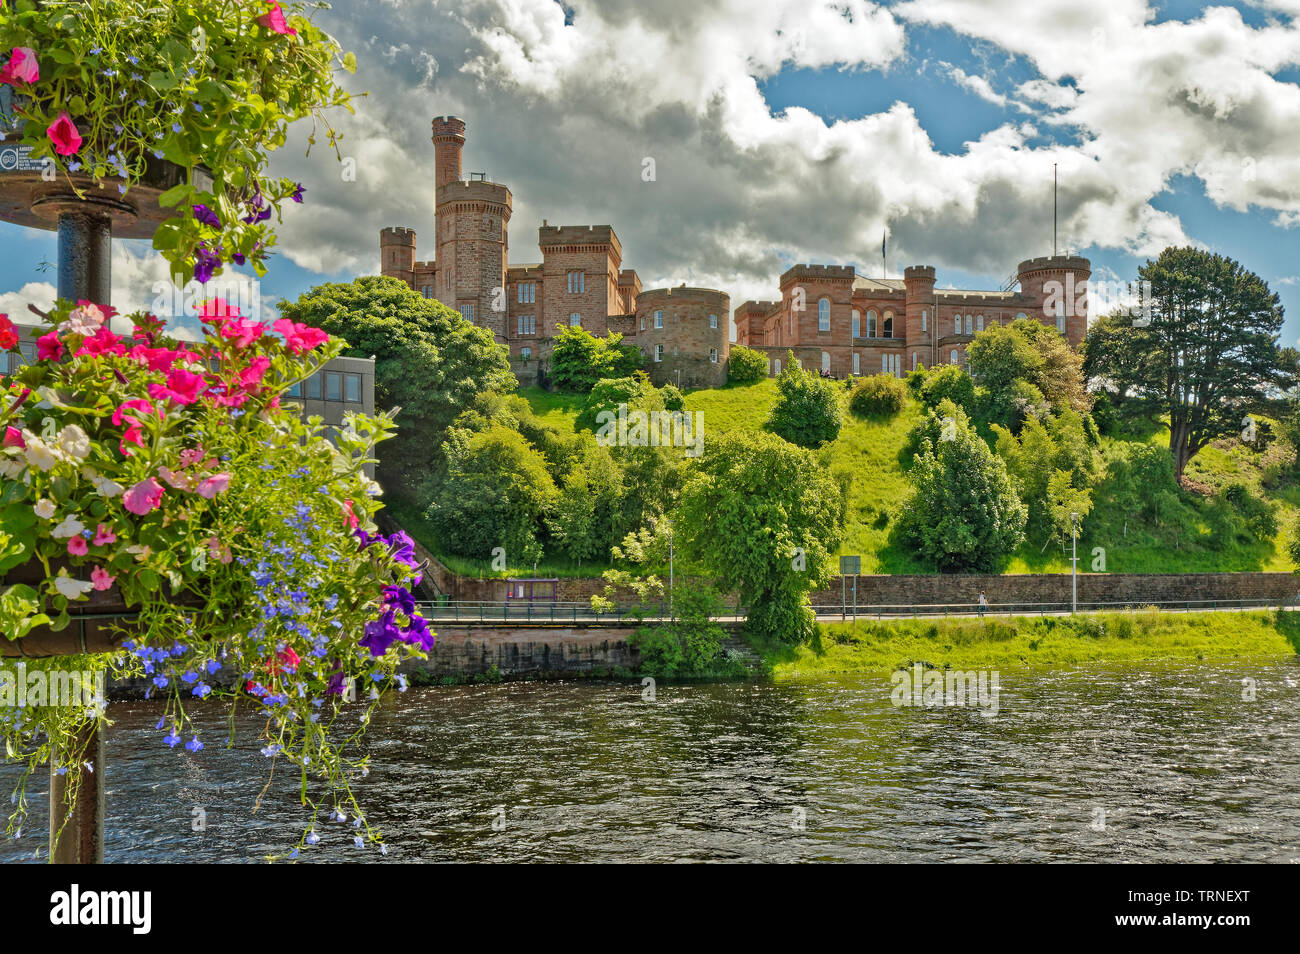 INVERNESS CITY SCOTLAND THE CASTLE AND VIEW OVER RIVER NESS FROM NESS ROAD BRIDGE WITH HANGING BASKETS AND PETUNIA FLOWERS - Stock Image